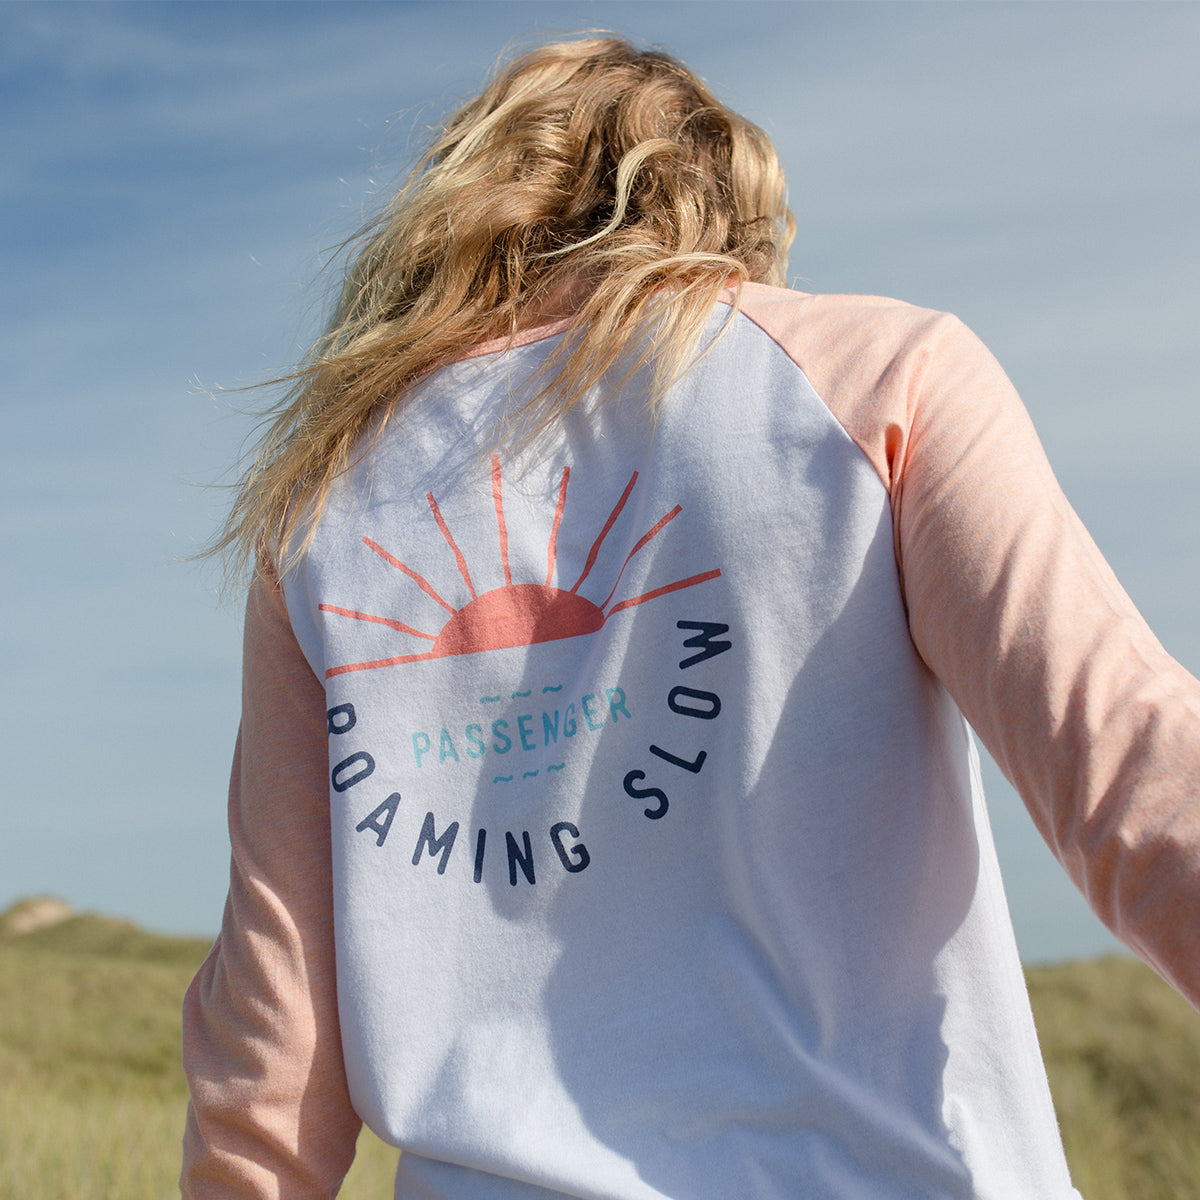 Roaming Slow L/S T-Shirt - Lobster Pink Marl And White image 1